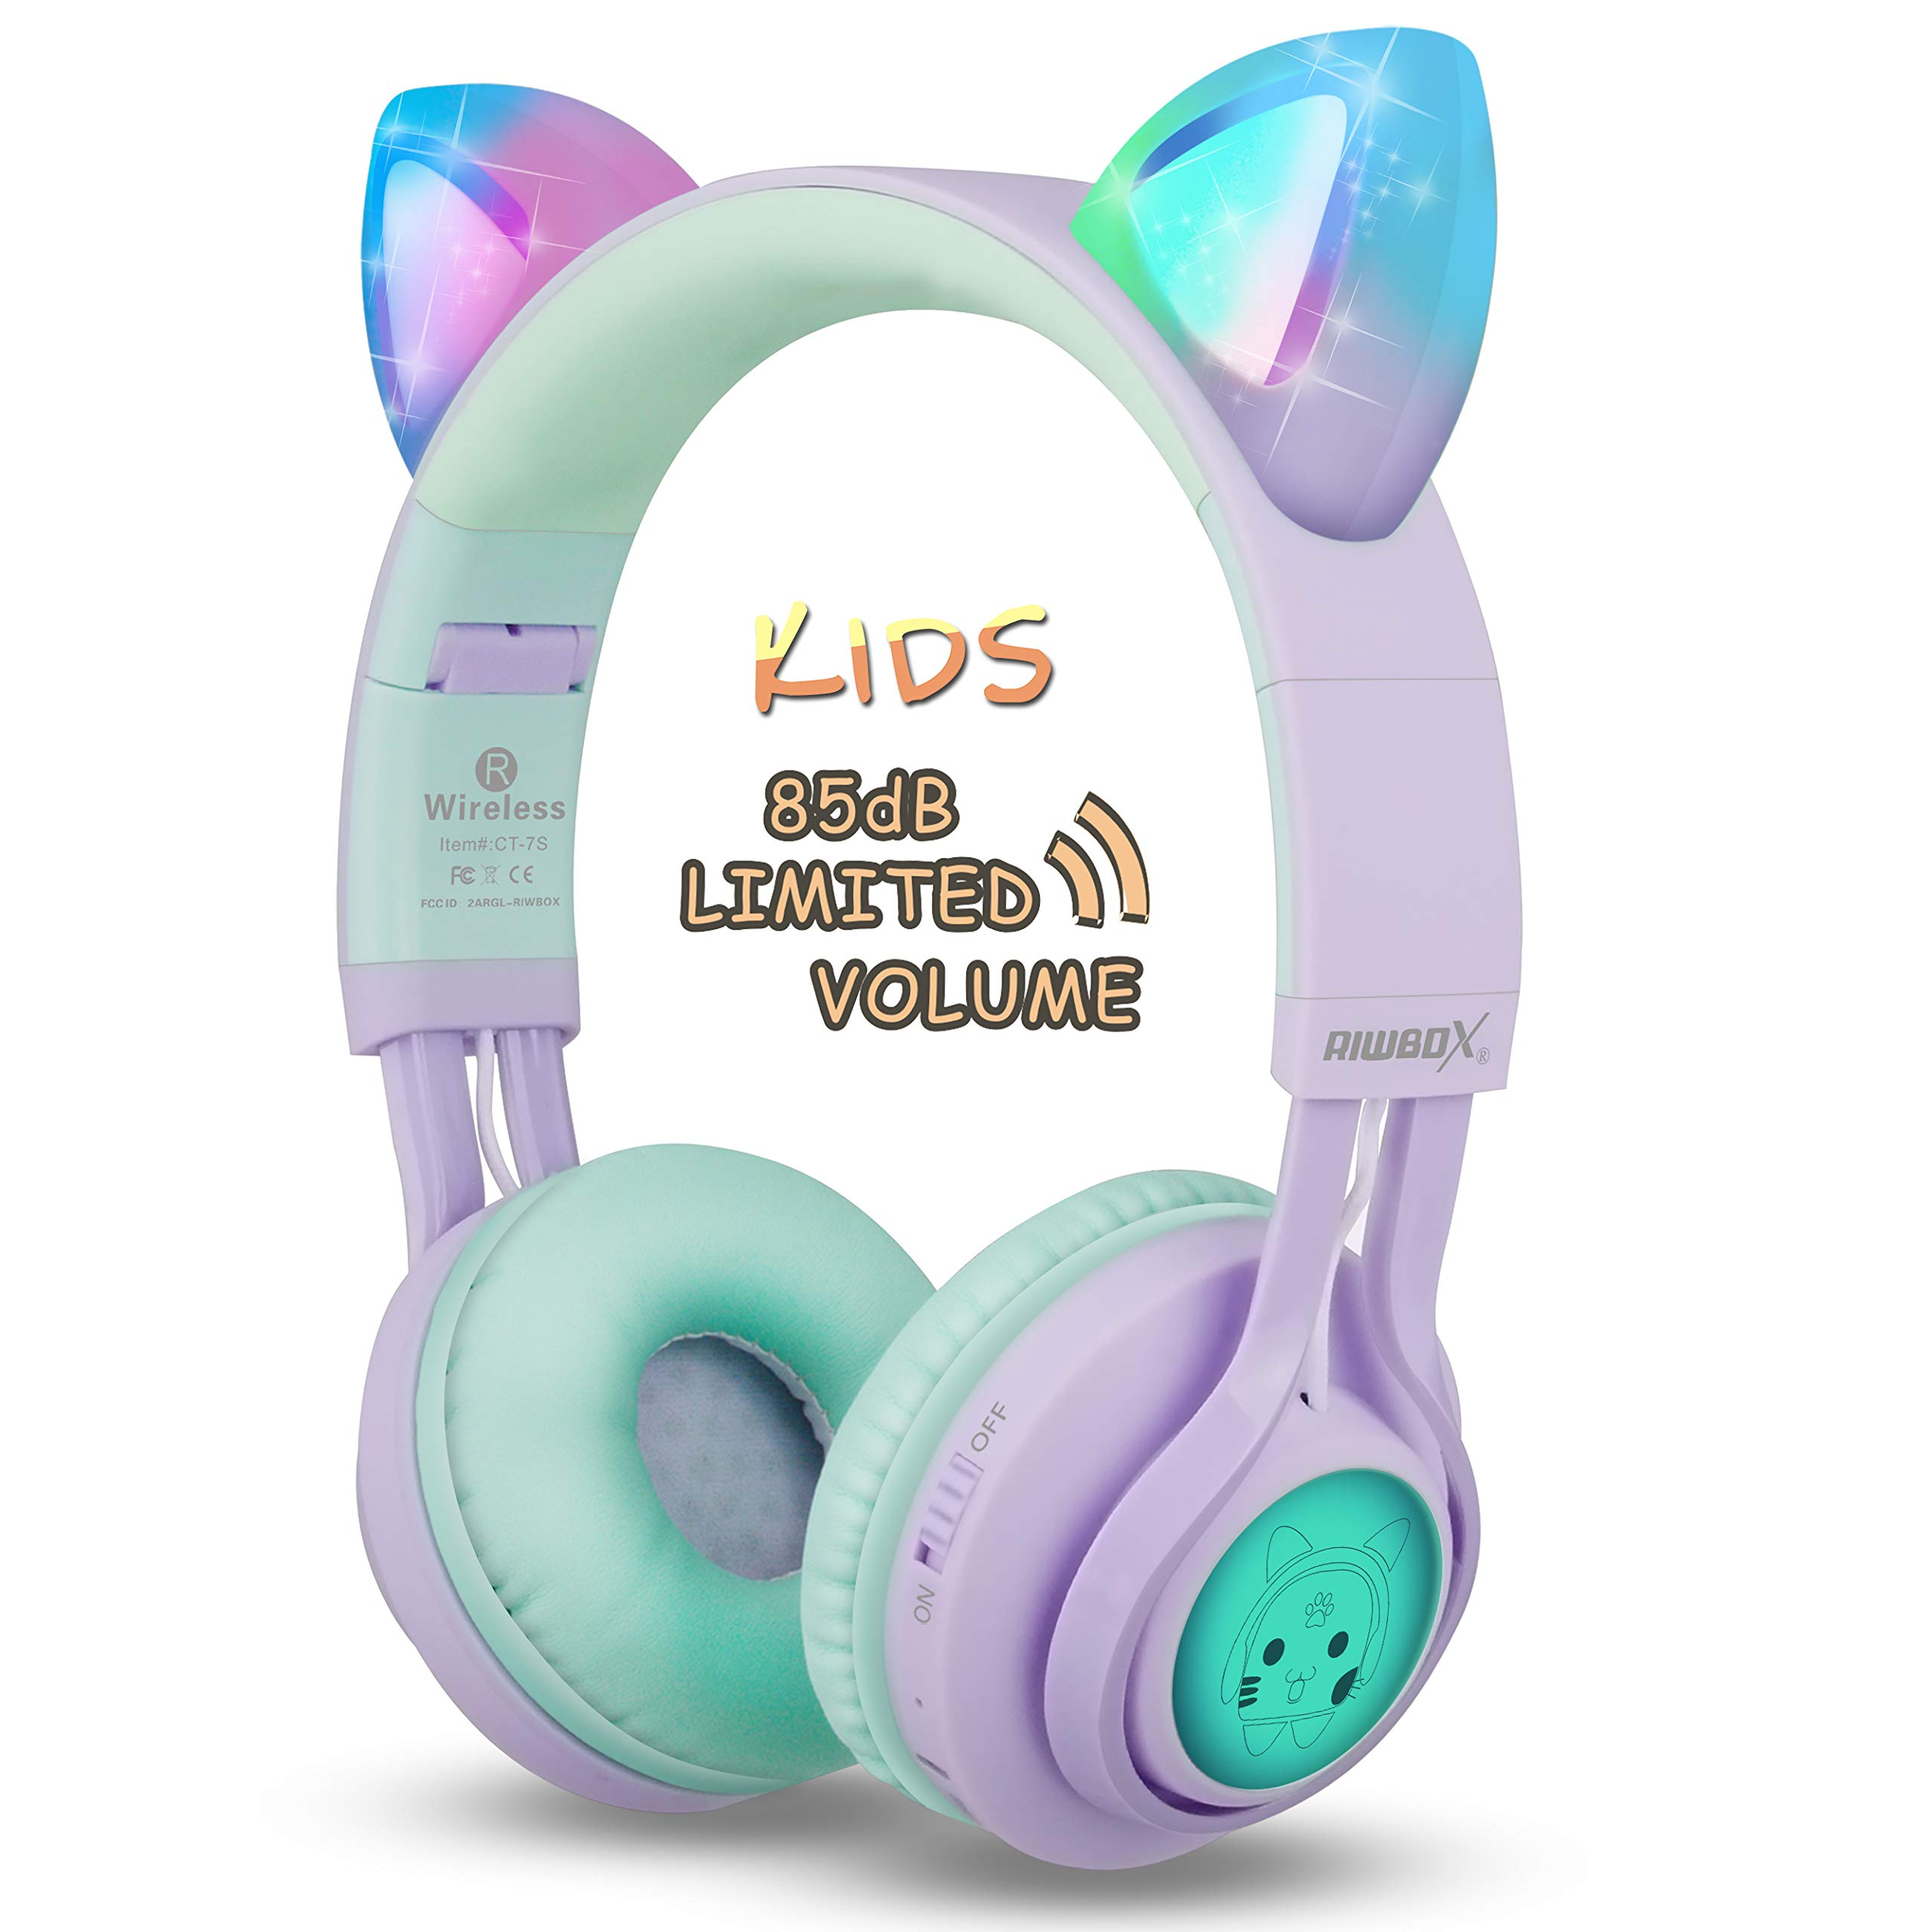 Kids Headphones, Riwbox CT-7S Cat Ear Bluetooth Headphones 85dB Volume Limiting,LED Light Up Kids Wireless Headphones Over Ear with Microphone for iPhone/iPad/Kindle/Laptop/PC/TV (Purple&Green) by Riwbox